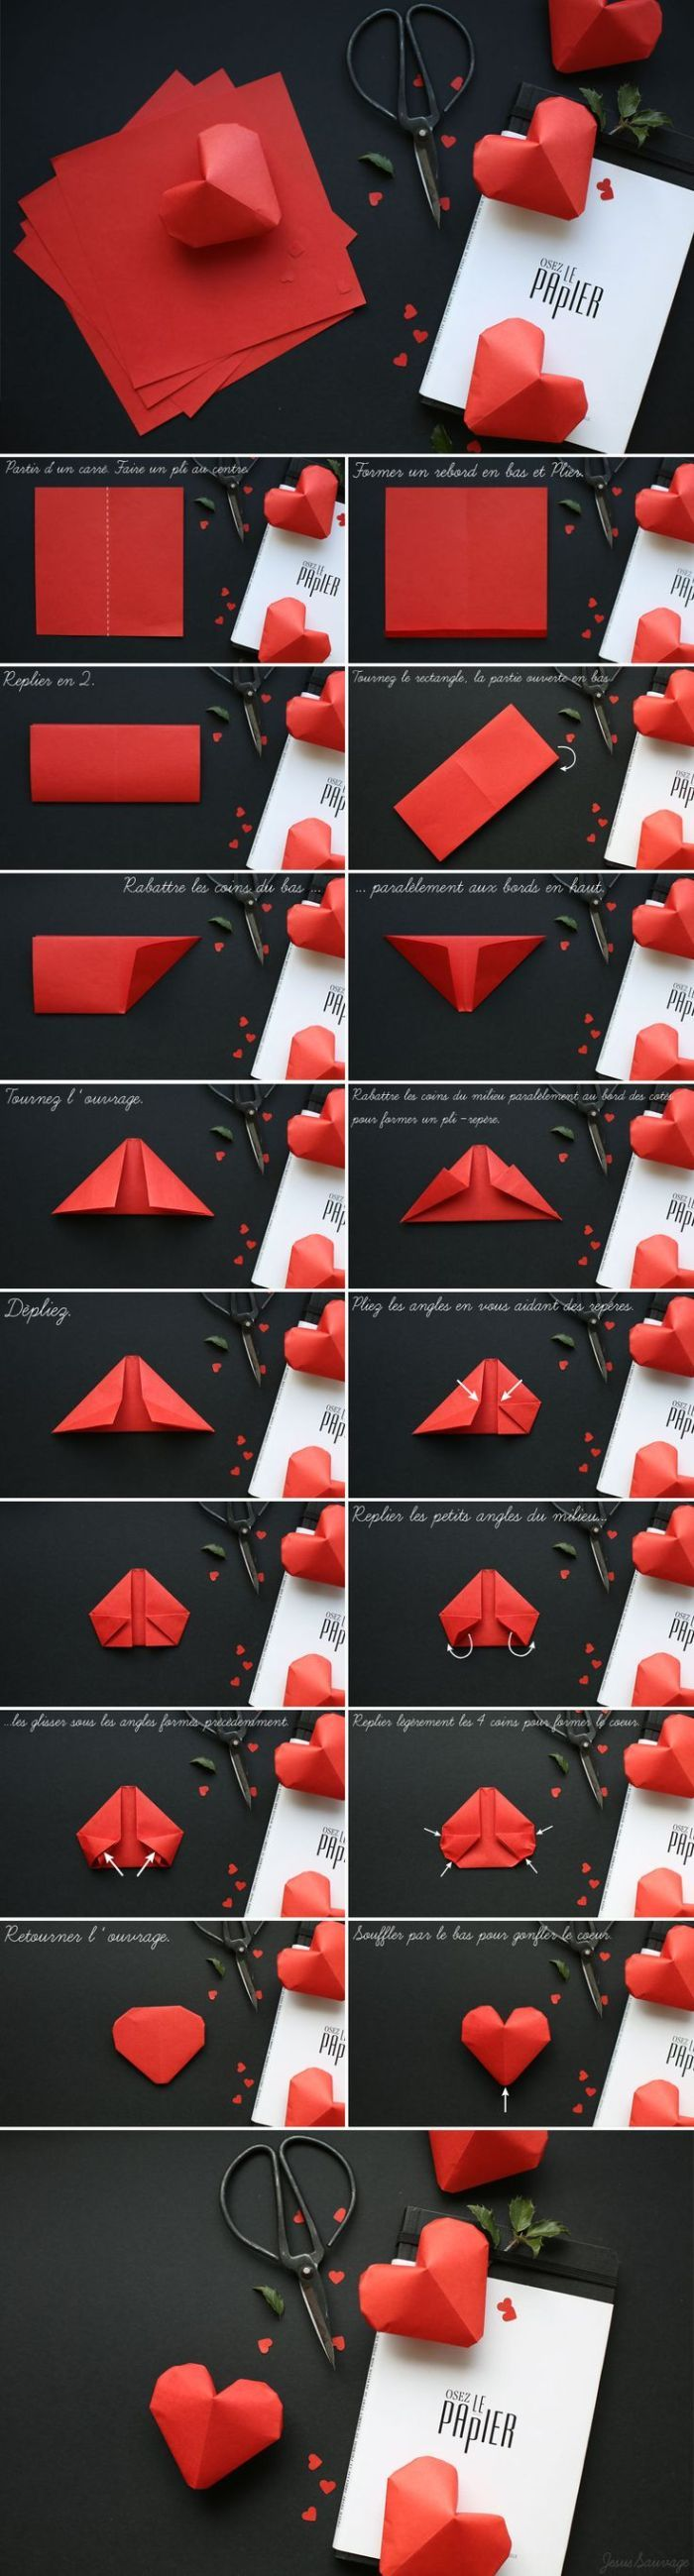 Pin By Rajasee Kale On Backyard Fun Paper Crafts Diy Paper Craft Tutorials Crafts